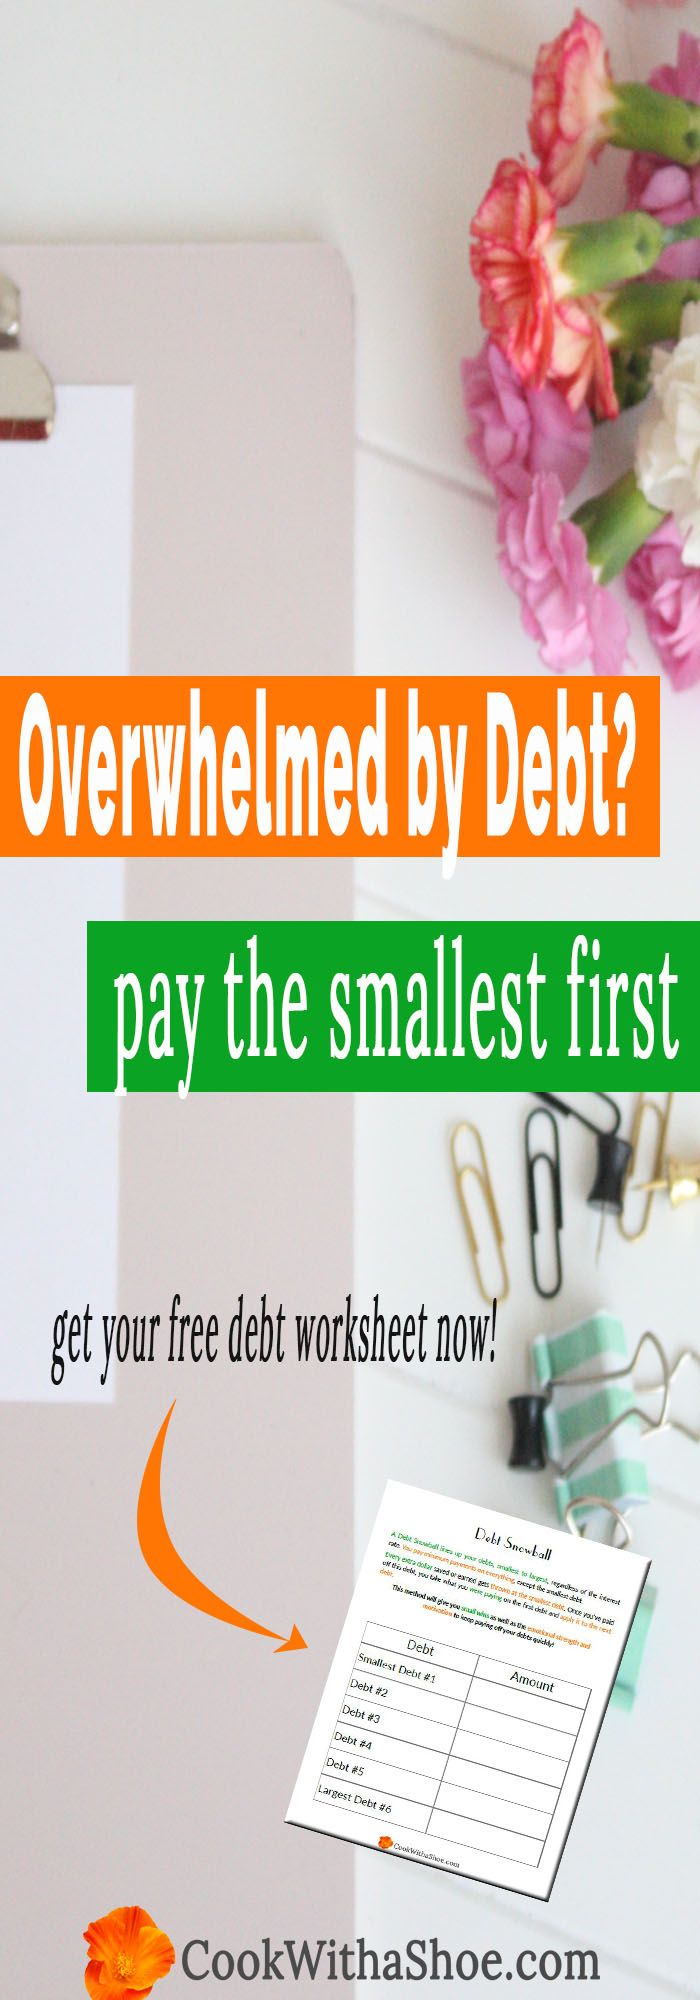 debt snowball | which debt do I pay first | highest interest debt vs smallest debt first | debt free | paying off debt | pay off debt fast | how to pay off debt fast | budgeting | Cook With a Shoe